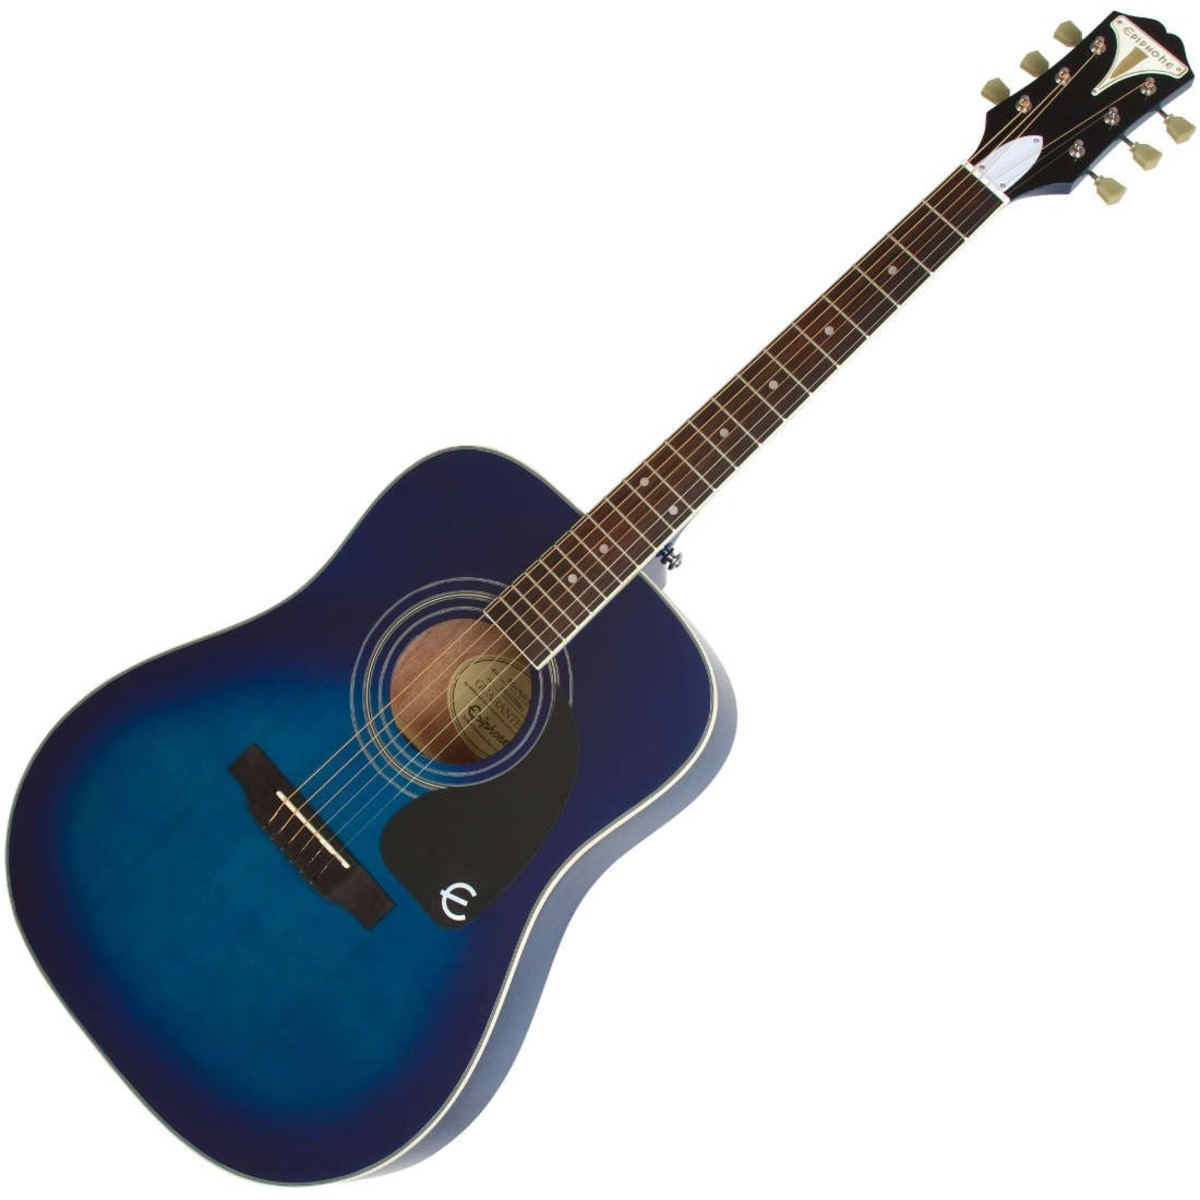 epiphone pro 1 plus acoustic guitar for beginners trans blue box opened at gear4music. Black Bedroom Furniture Sets. Home Design Ideas